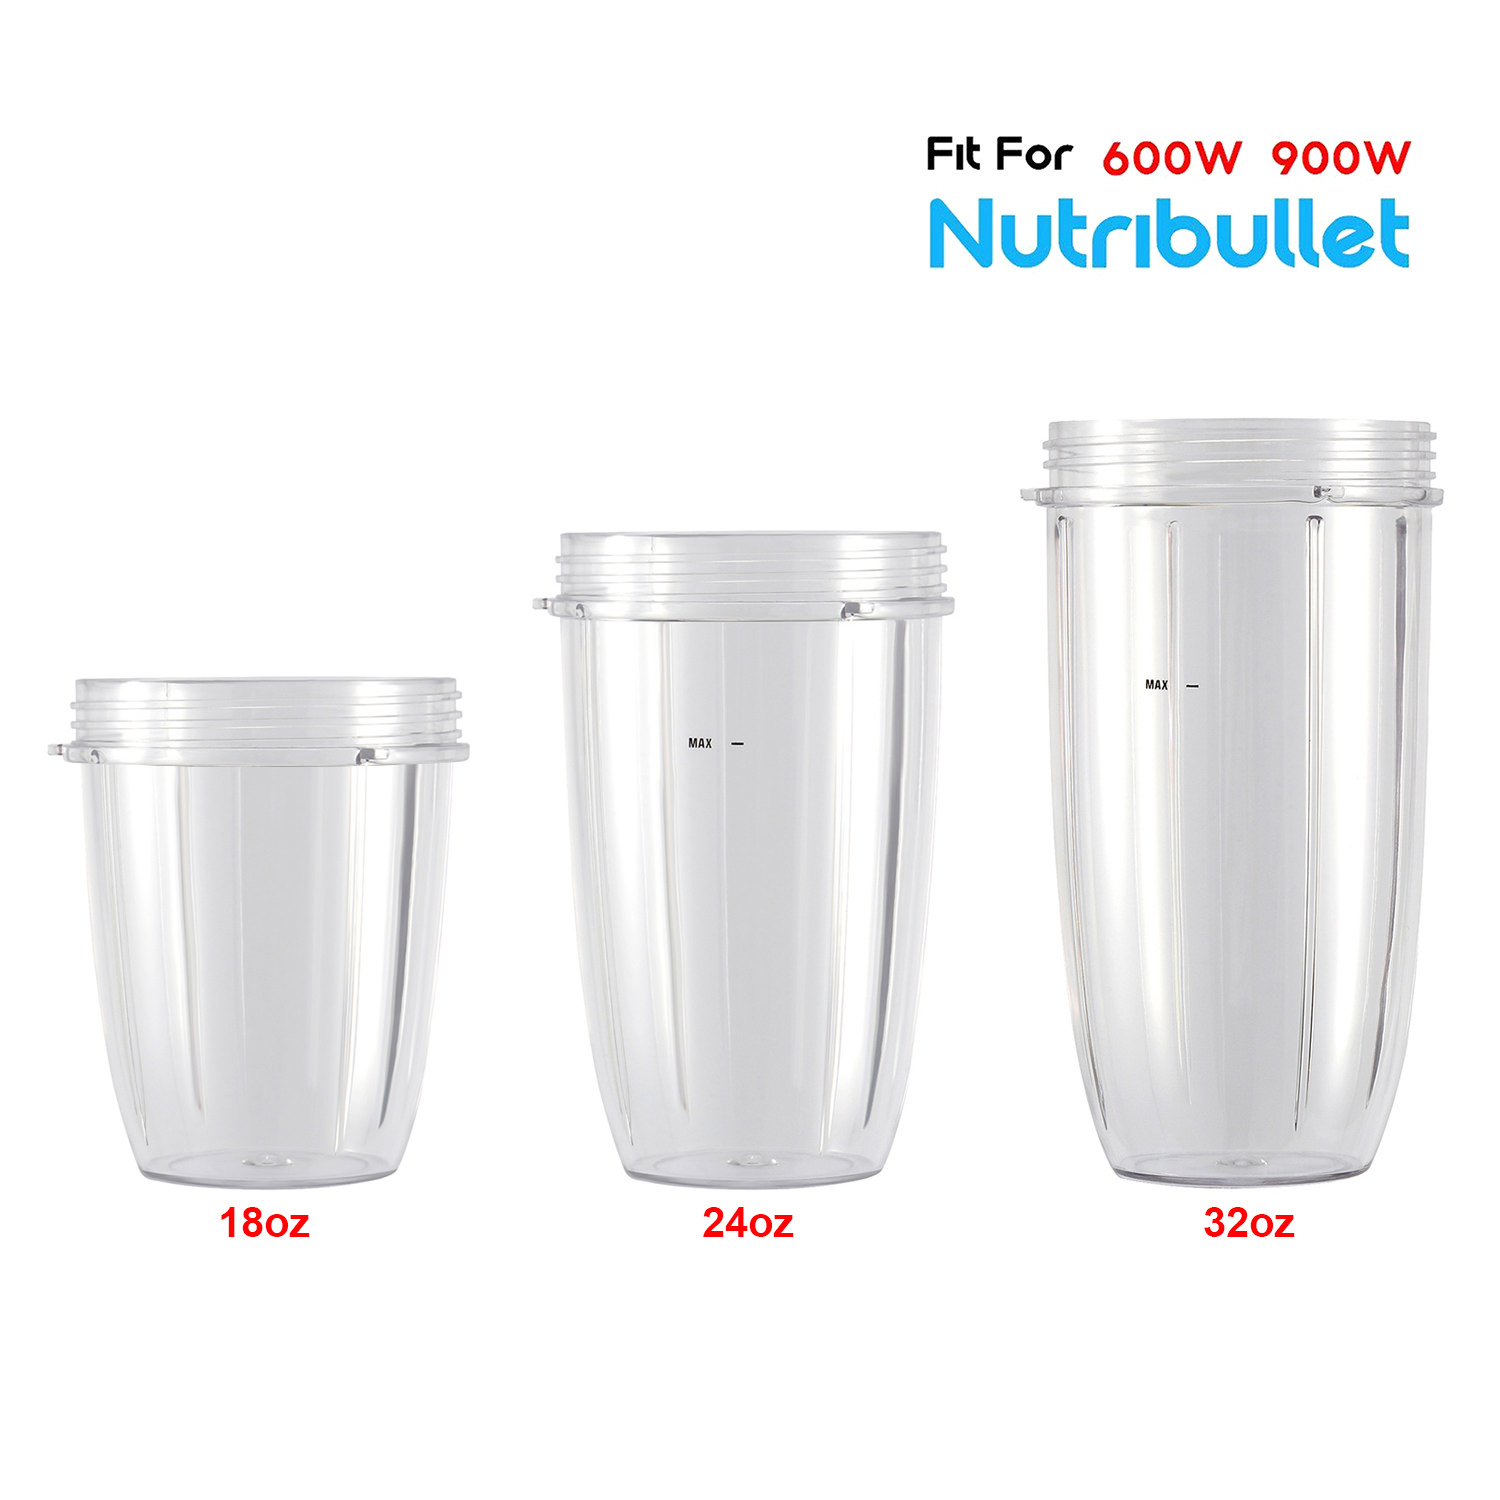 Blender Replacement Parts for Nutribullet Blender 18oz Cups /& Replacement Extractor Blade Replacement Parts Compatible with Nutribullet 600W//900W Models